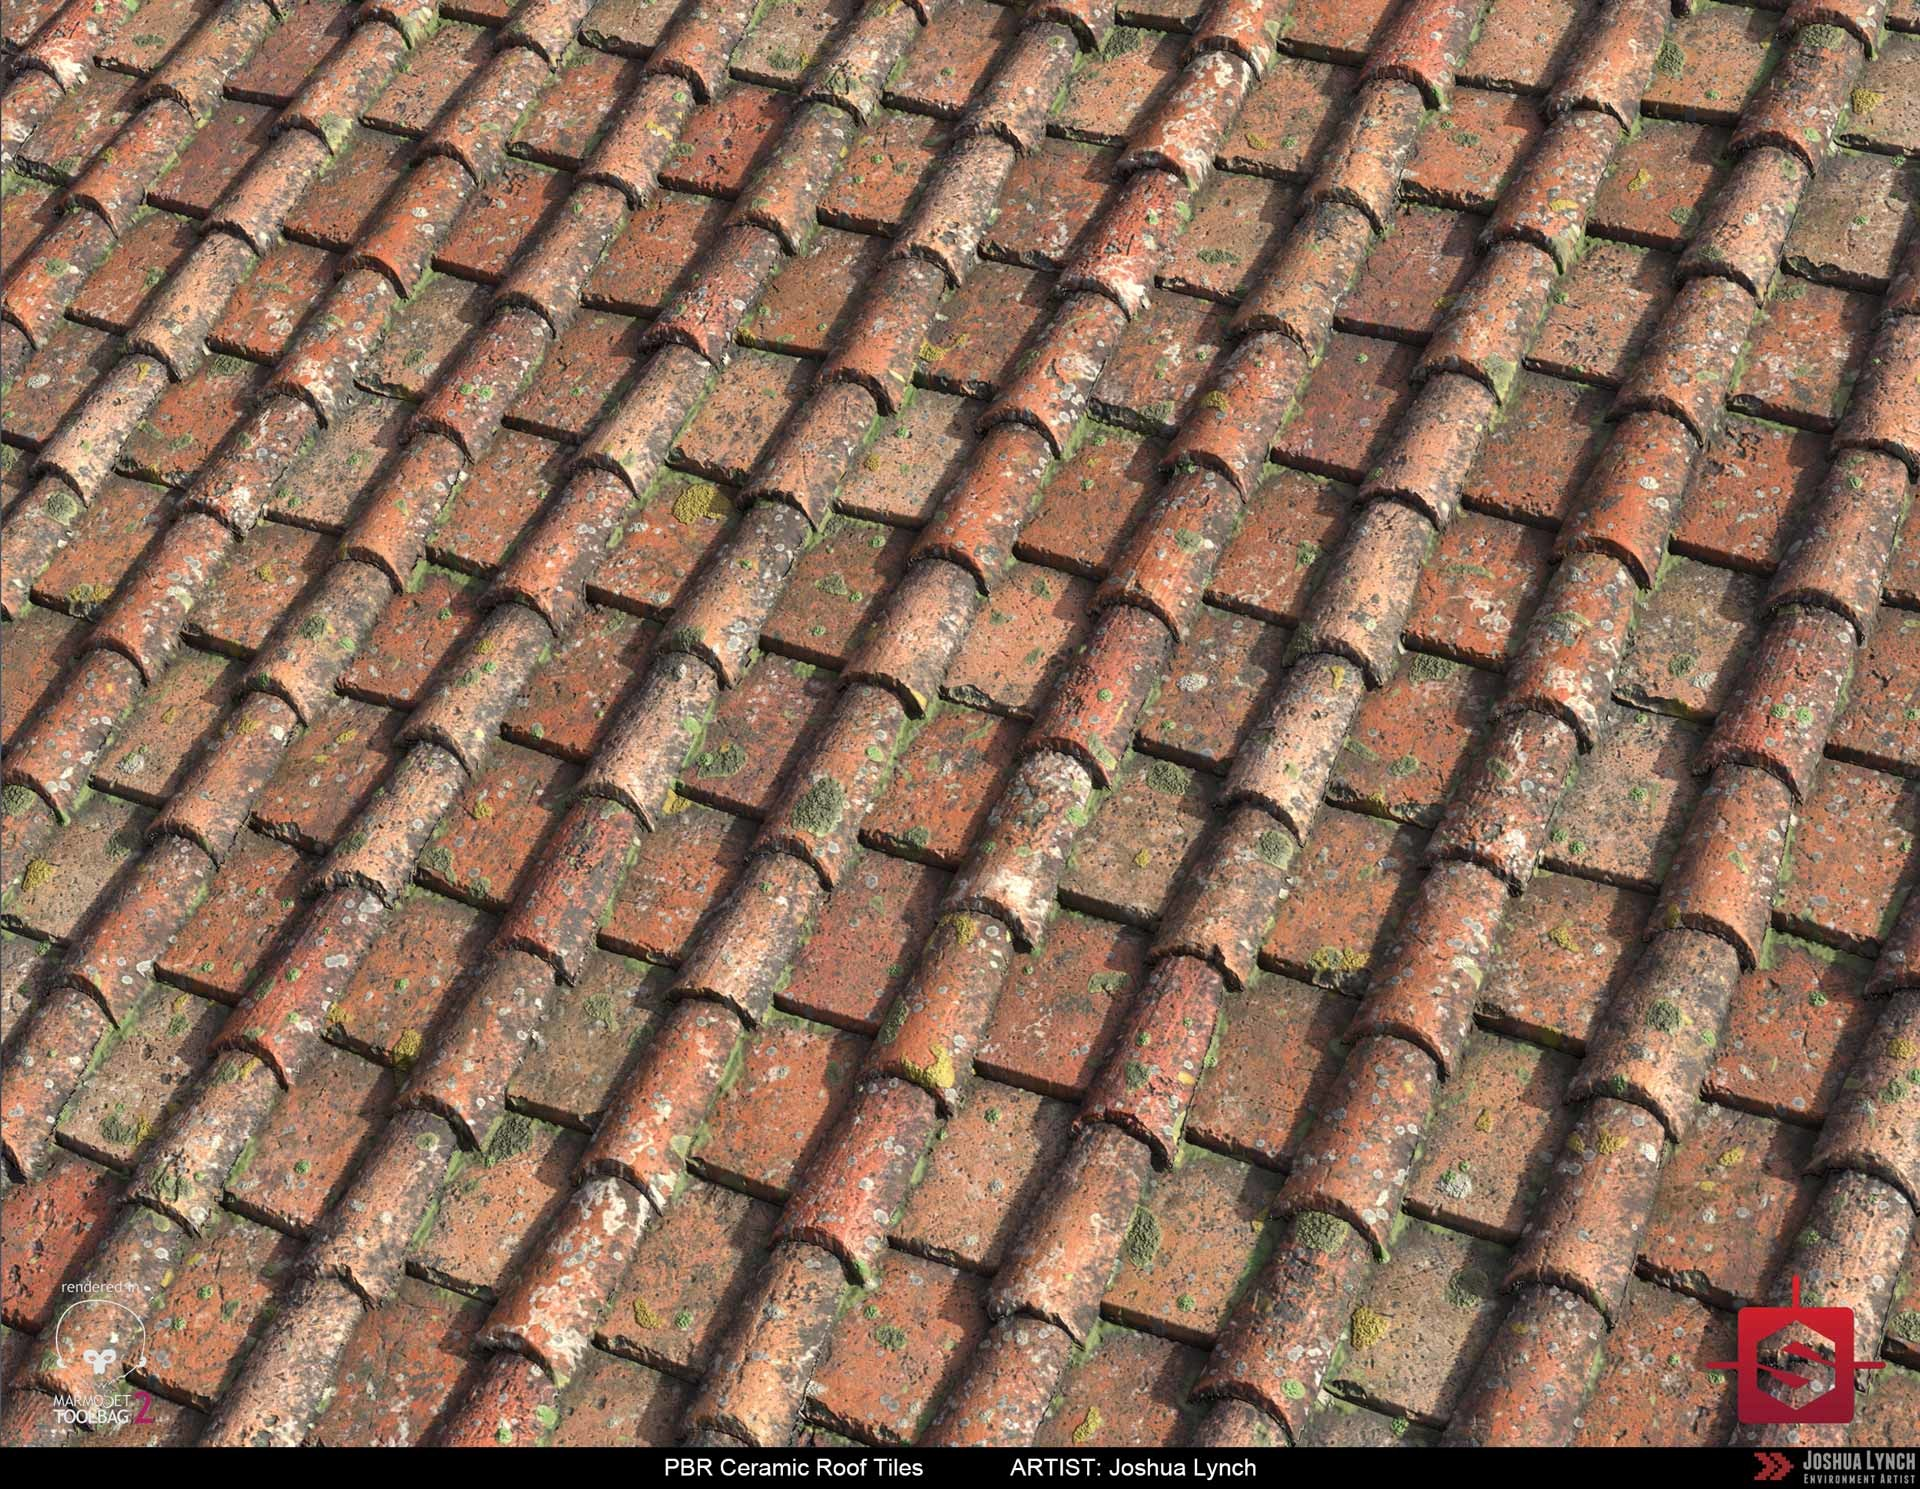 Joshua lynch pbr procedural ceramic roof tiles material study 02 joshua lynch roofing tiles 02 plane angle rev 03 layout comp josh lynch dailygadgetfo Image collections